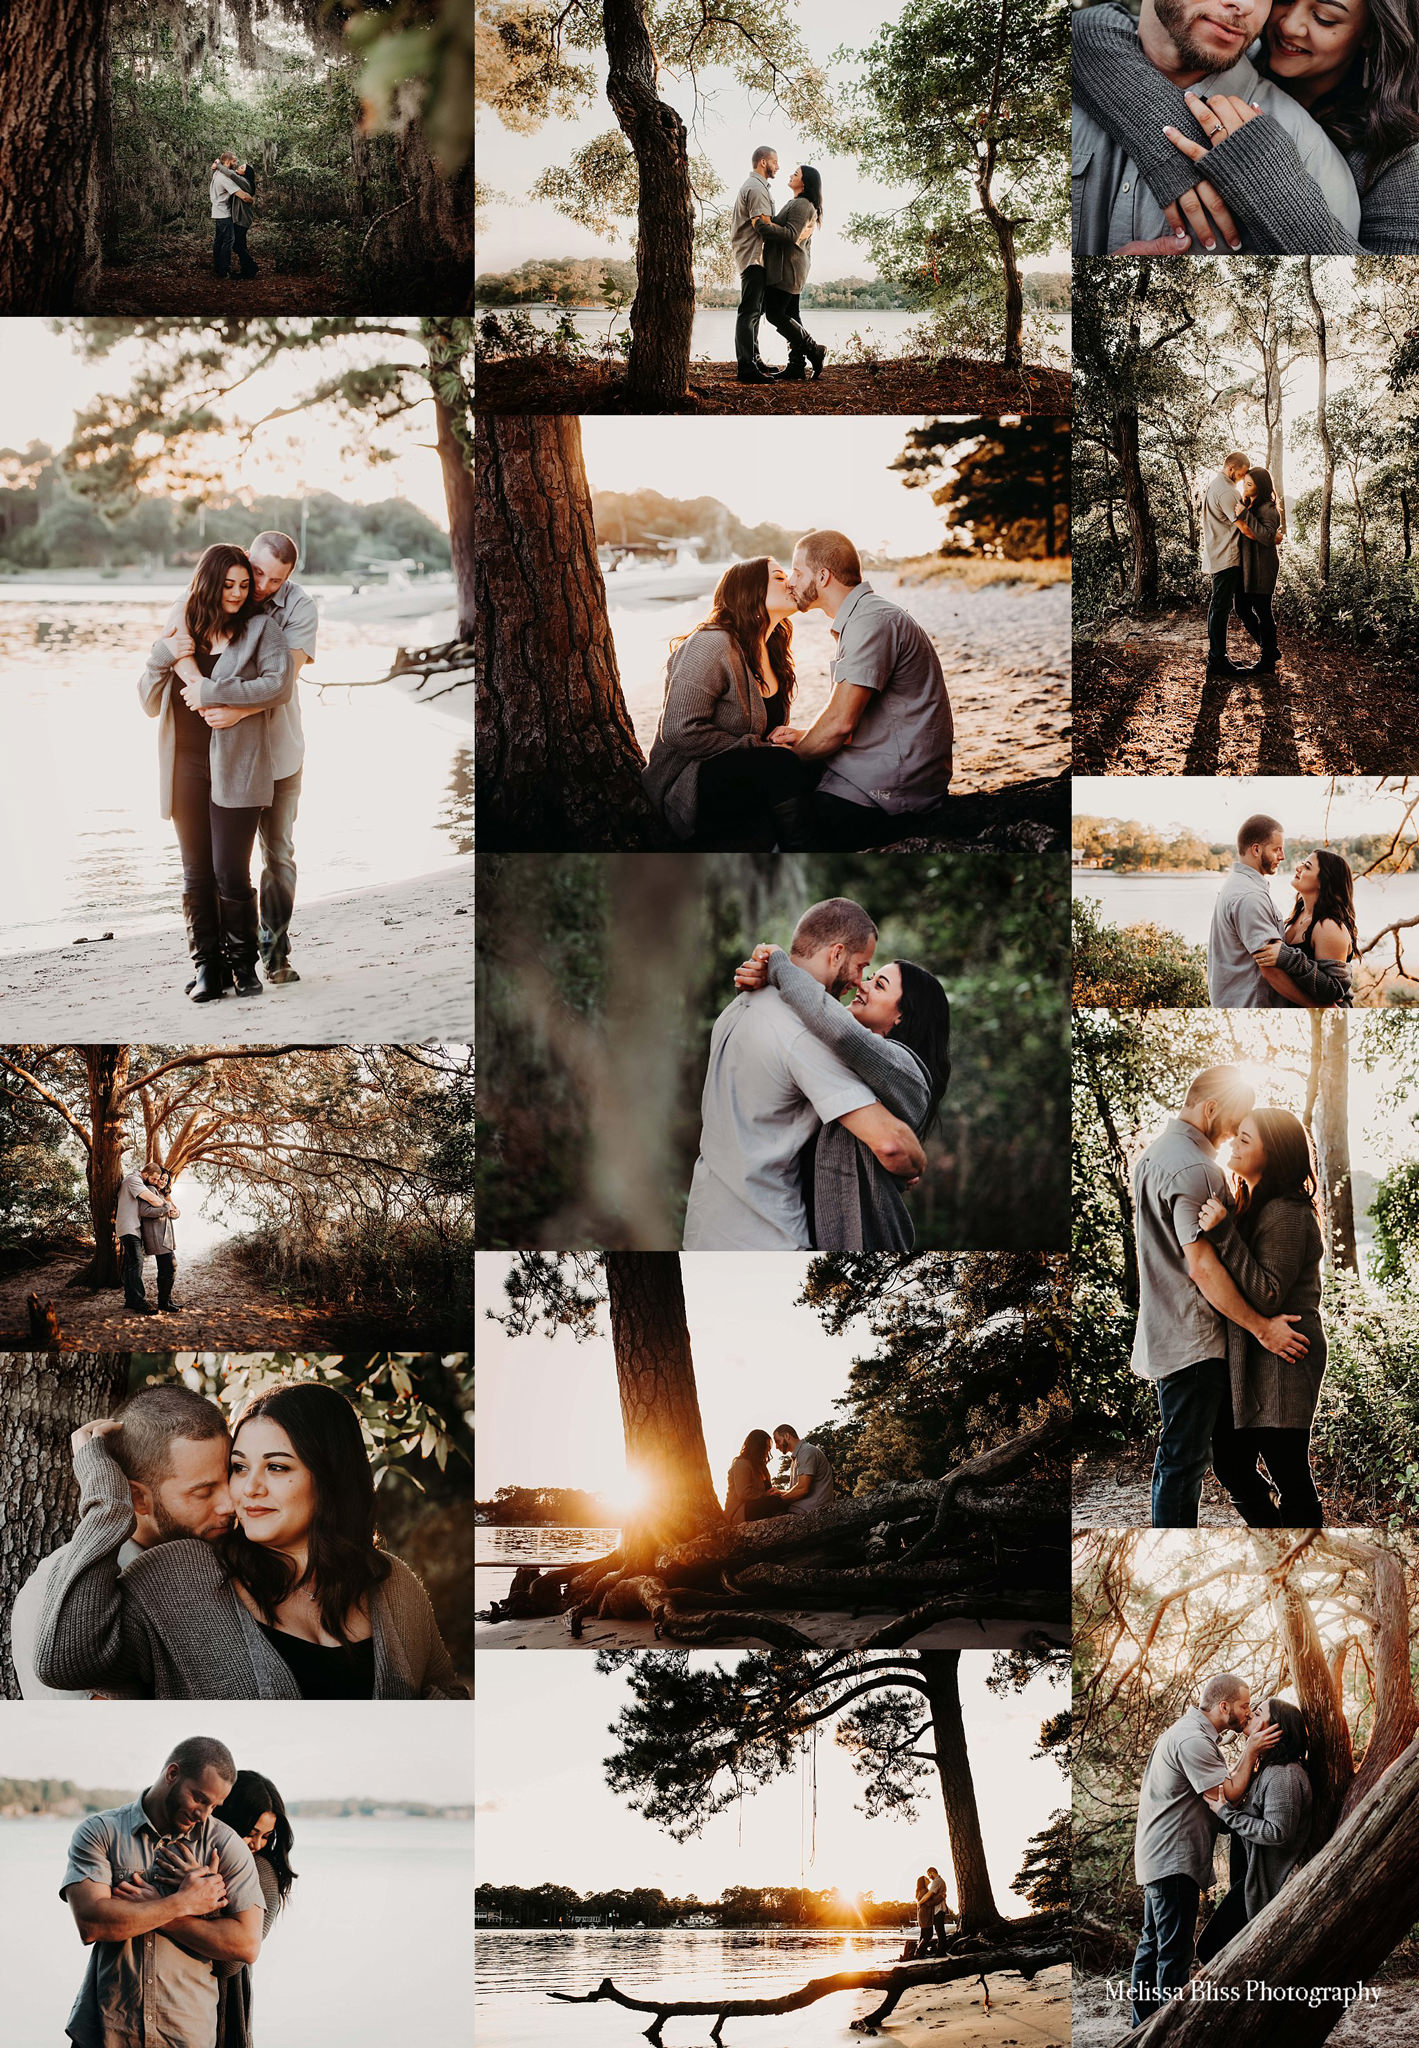 fall-woodsy-engagement-session-inspiration-romantic-sunset-engagement-pictures-in-the-woods-melissa-bliss-photography-va-destination-wedding-photographer.jpg